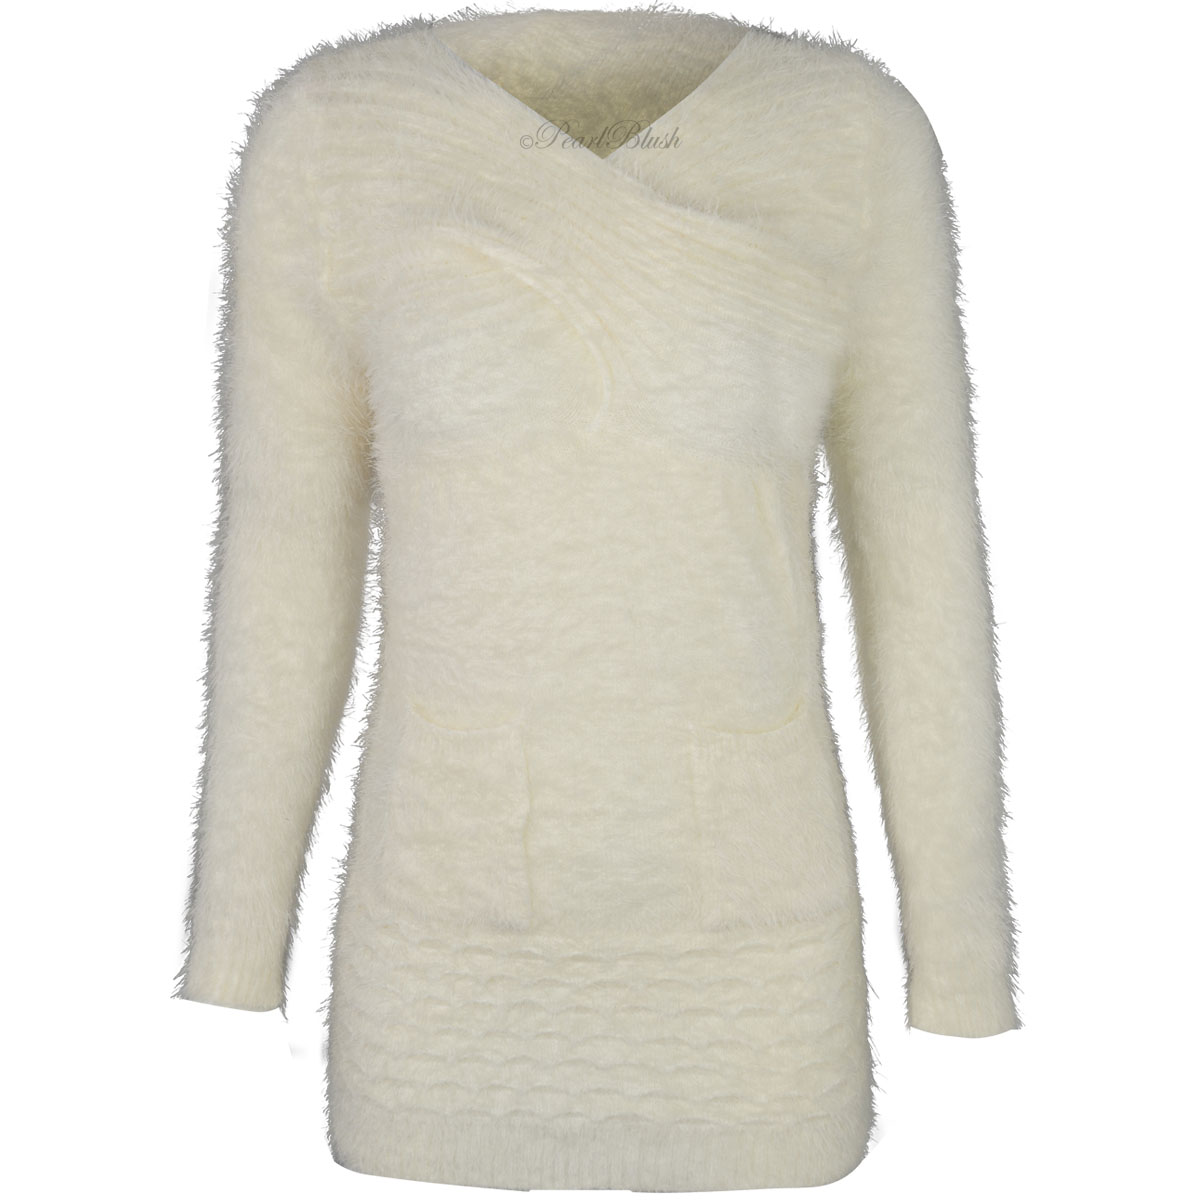 Find great deals on eBay for ladies long jumpers. Shop with confidence. Skip to main content. eBay: Shop by category. New Listing US Womens Long Sleeve Jumper Ladies Knitted Sweater Loose Tunic Top Mini Dresses. Brand New · Unbranded. $ .